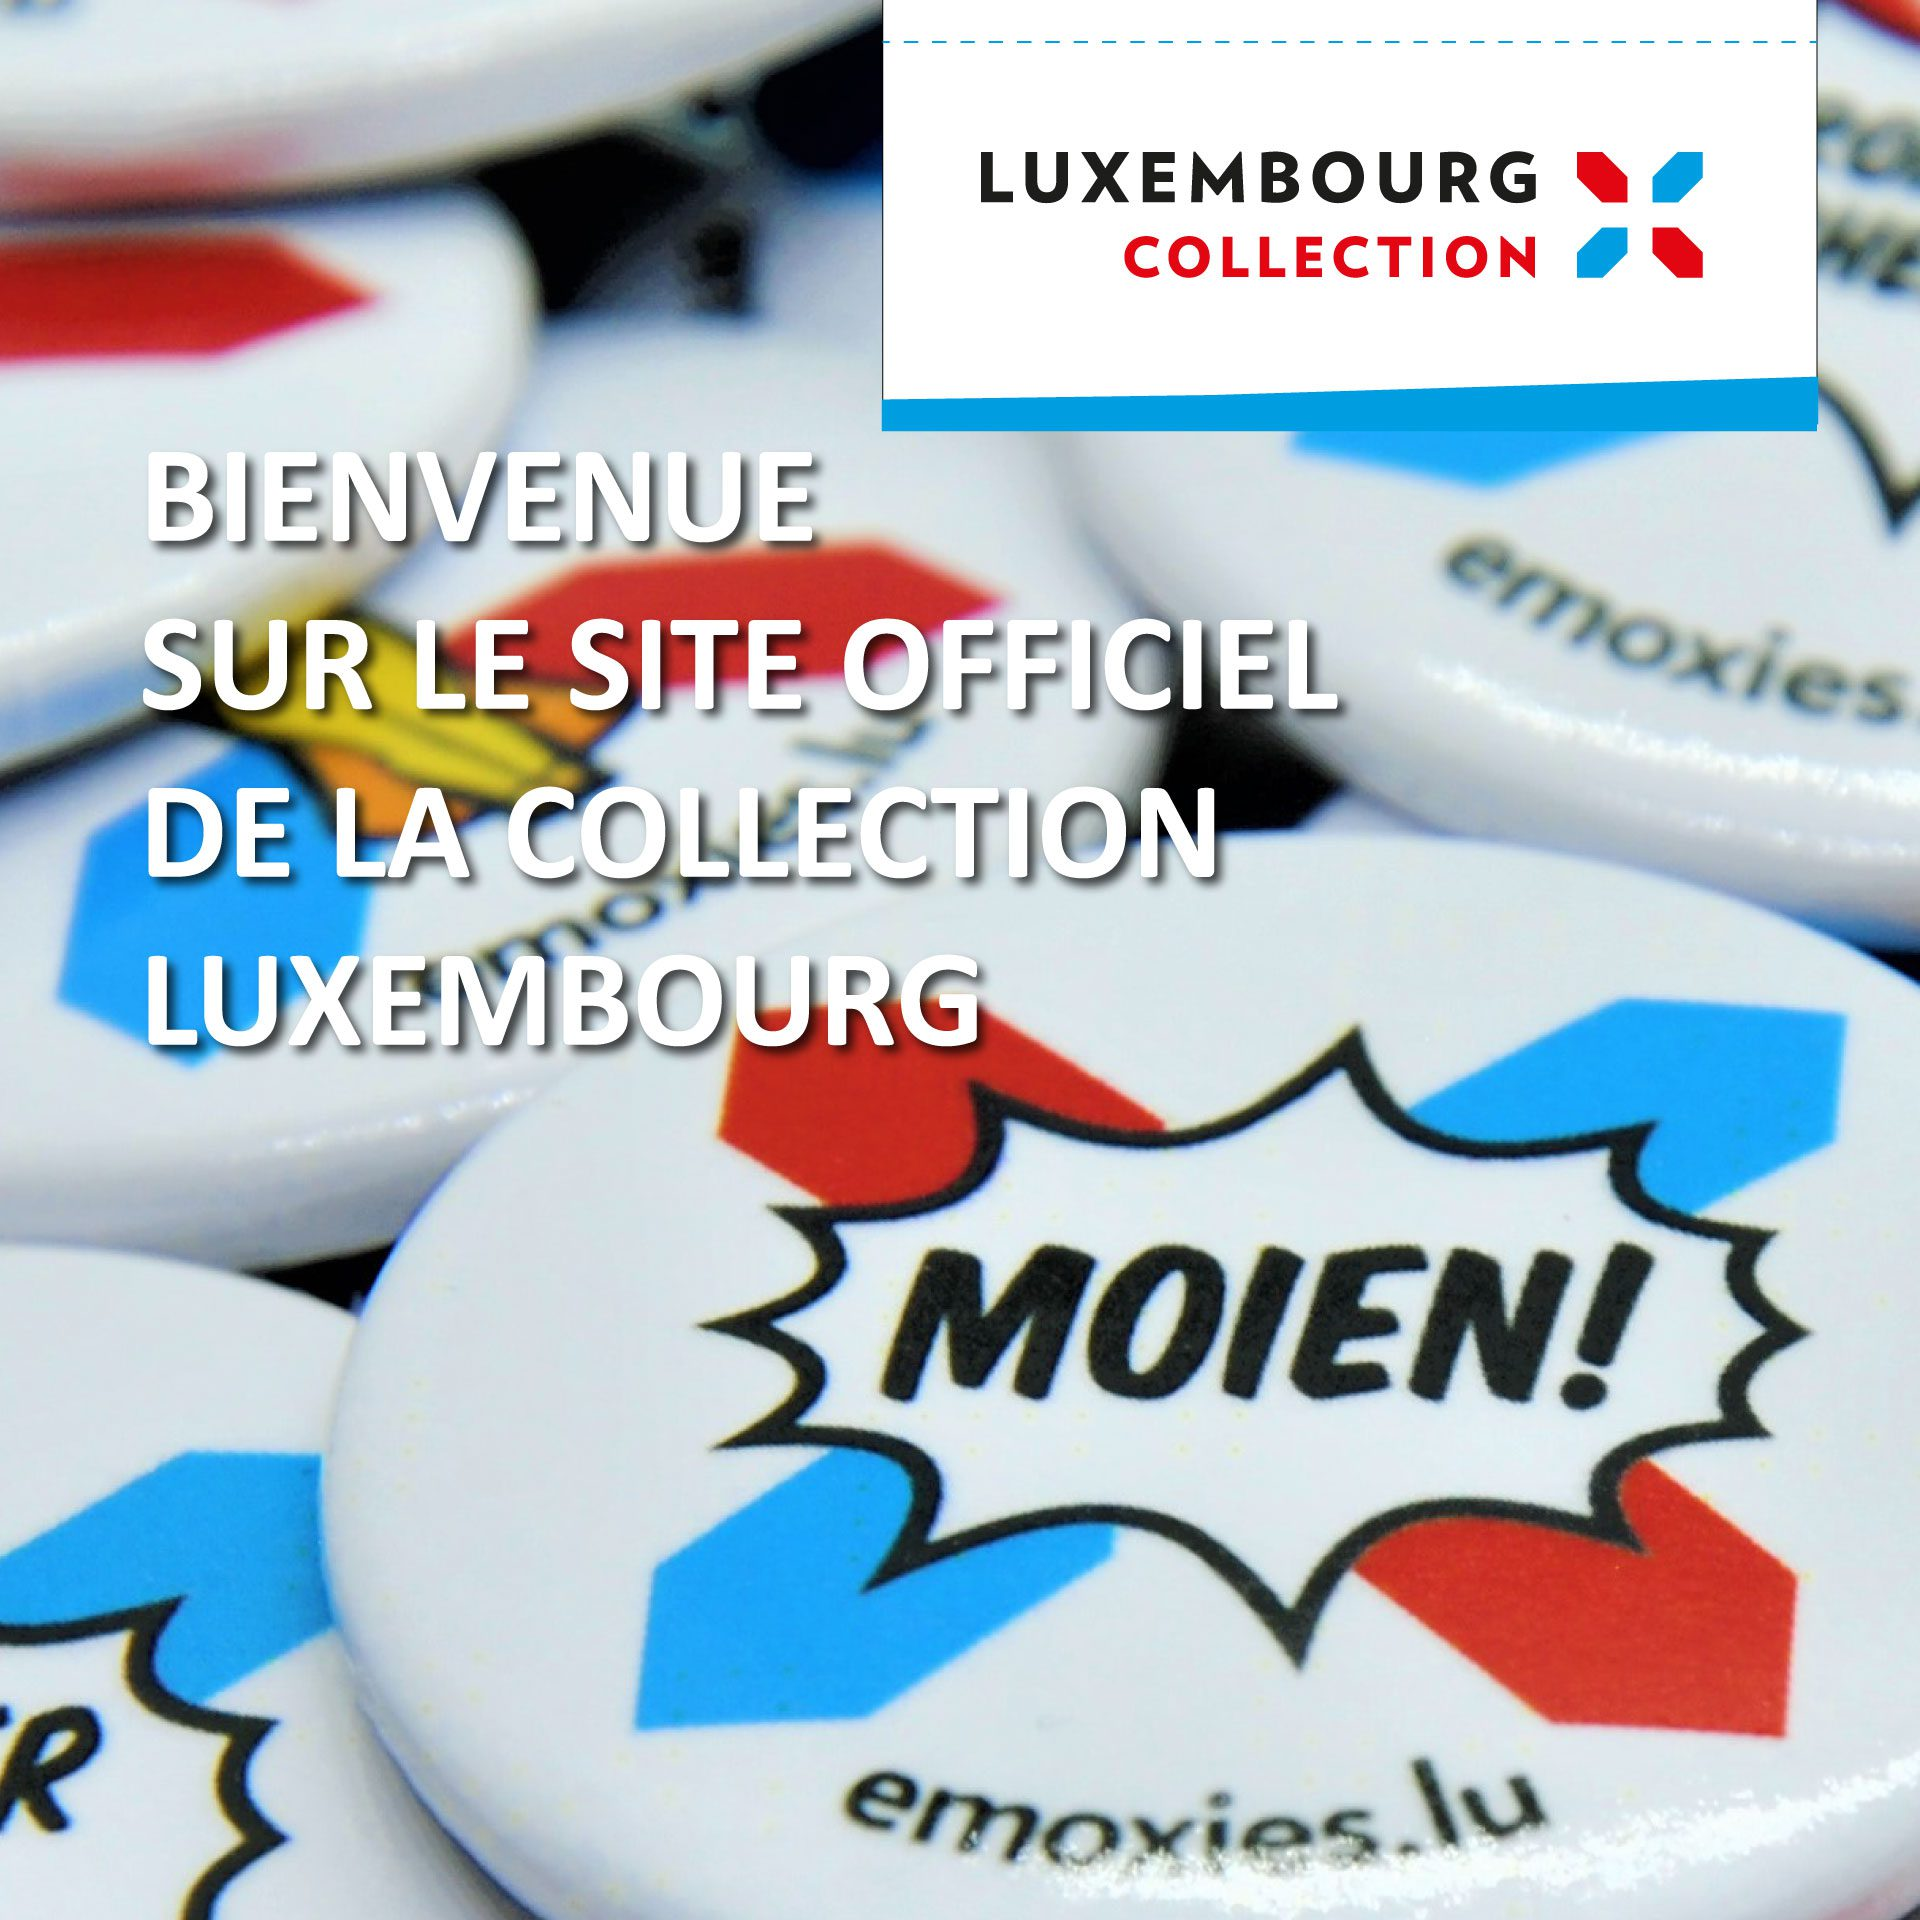 Luxembourg Collection Bienvenue Mobile